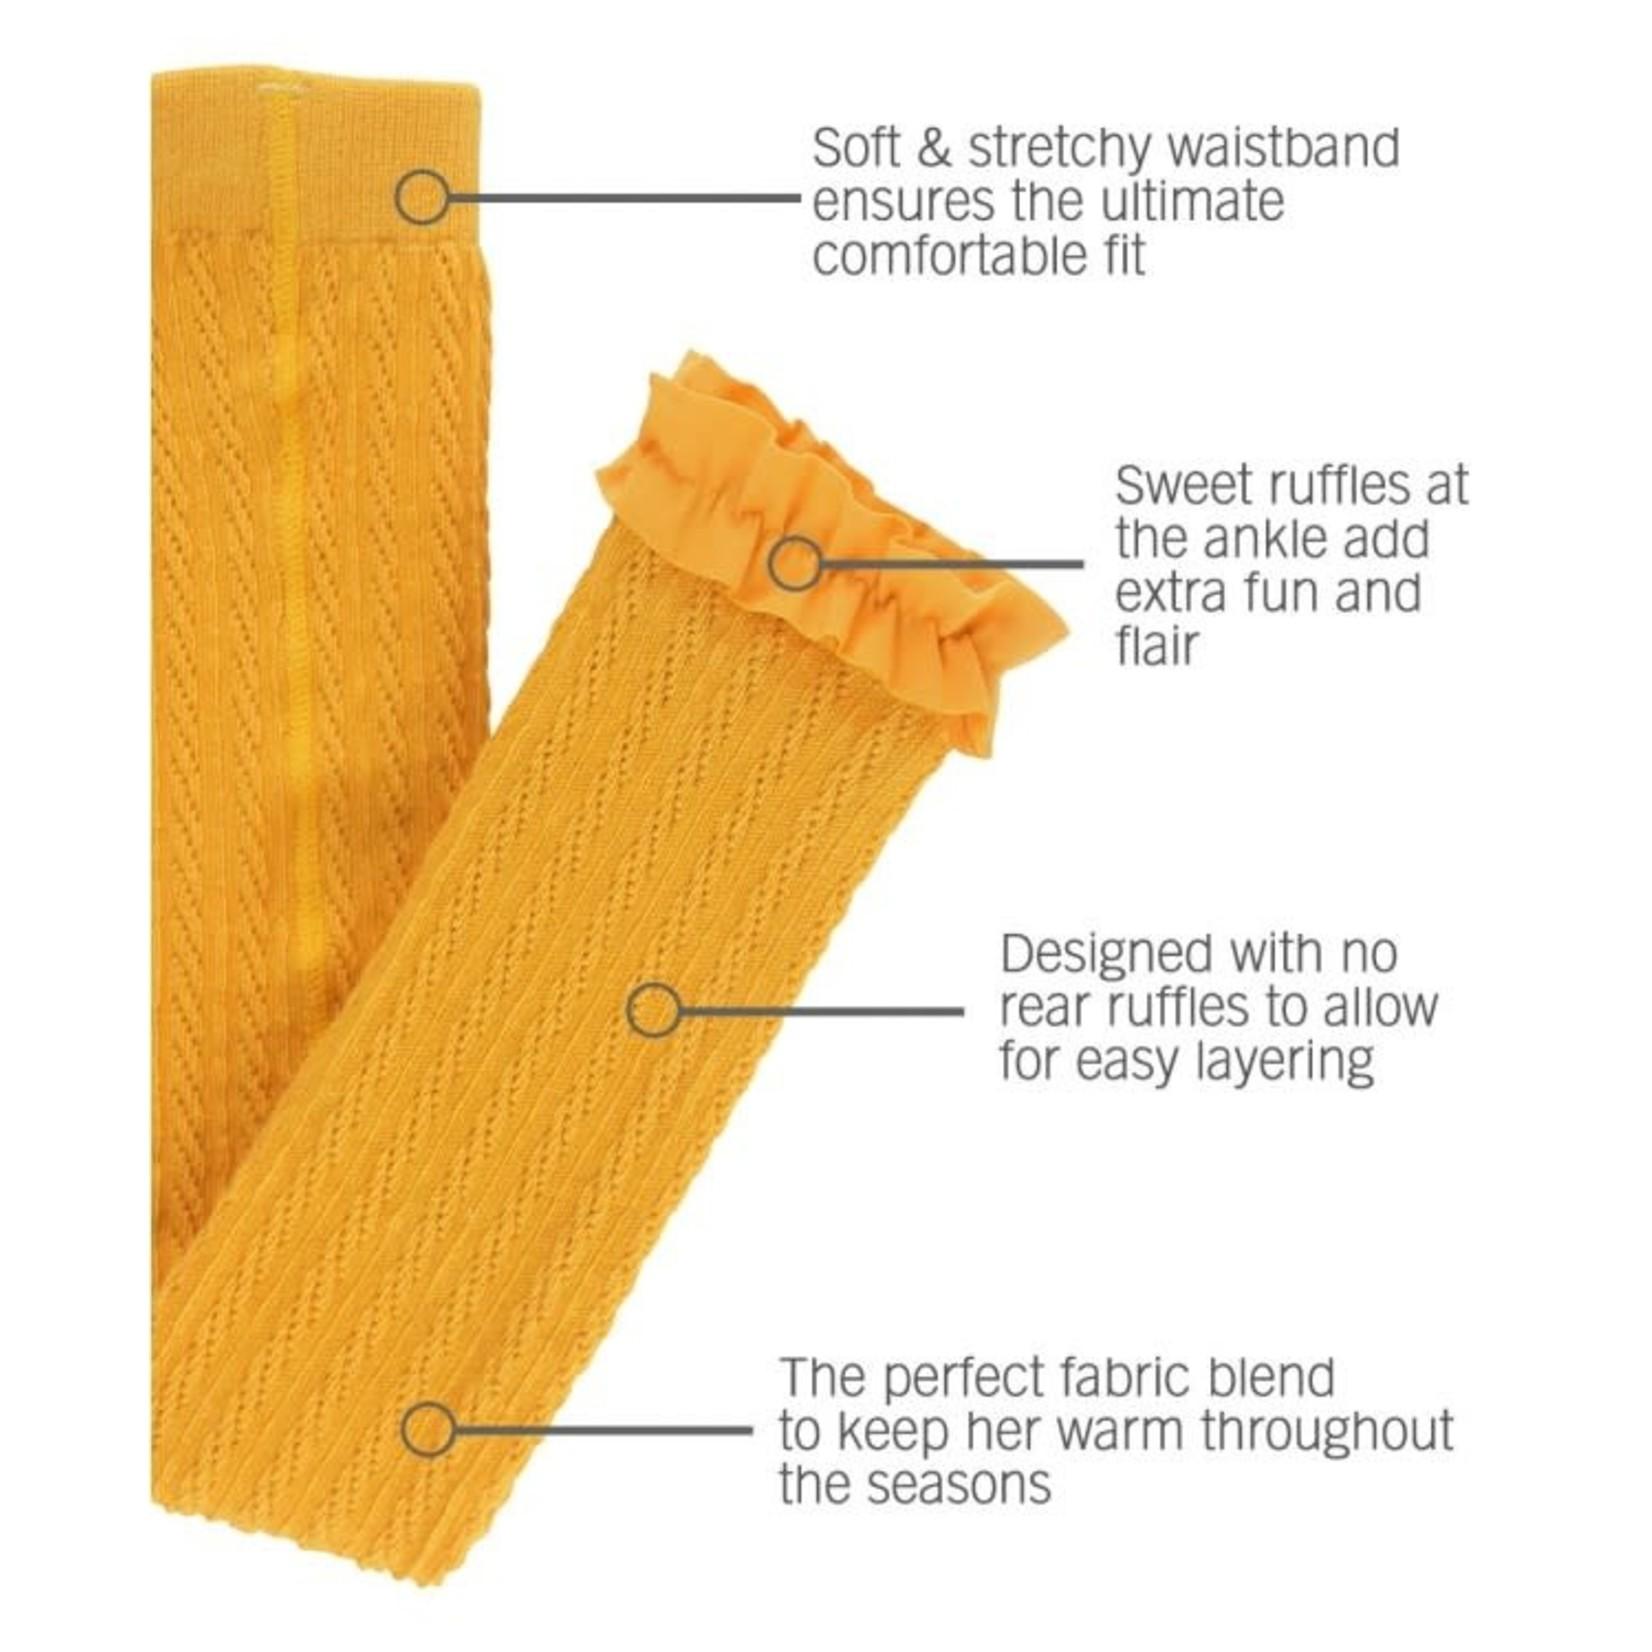 RuffleButts Cable Knit Footless Ruffle Tights, Golden Yellow